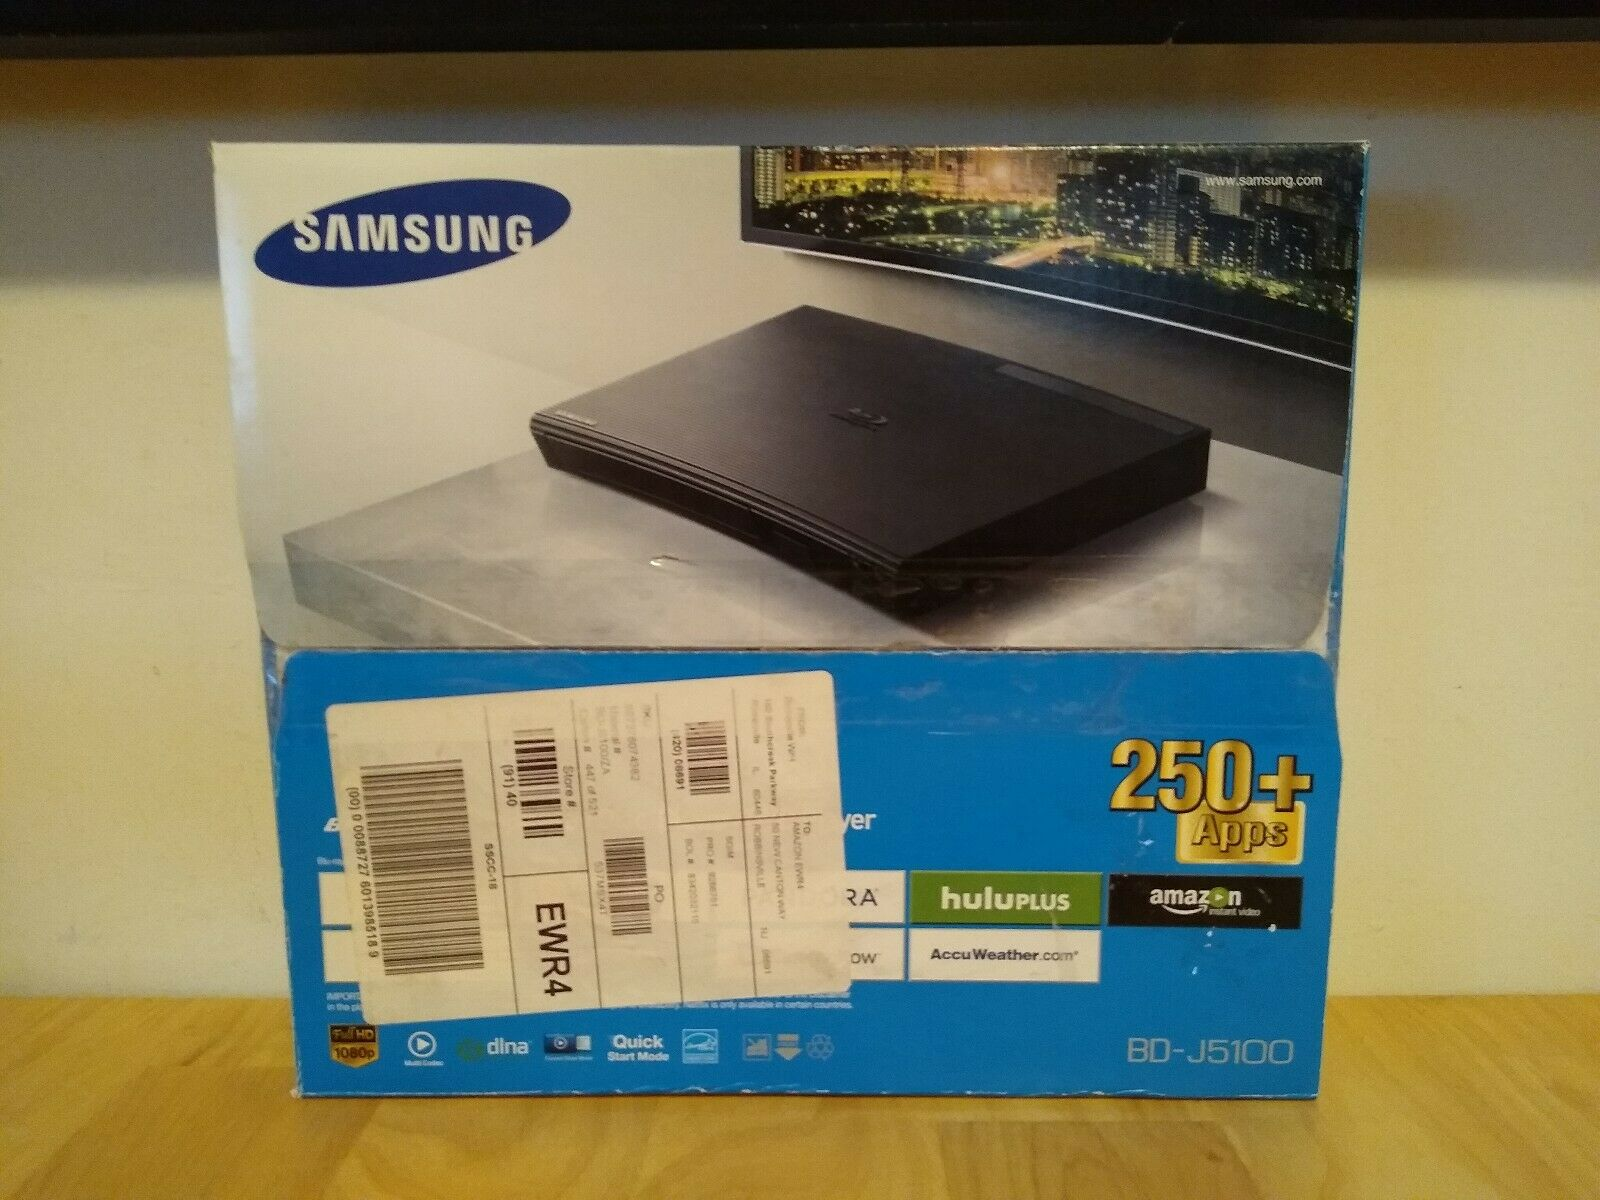 Samsung BD-J5100 Blu-ray Disc Player/DVD Player Streaming Device Brand New brand device disc new player samsung streaming